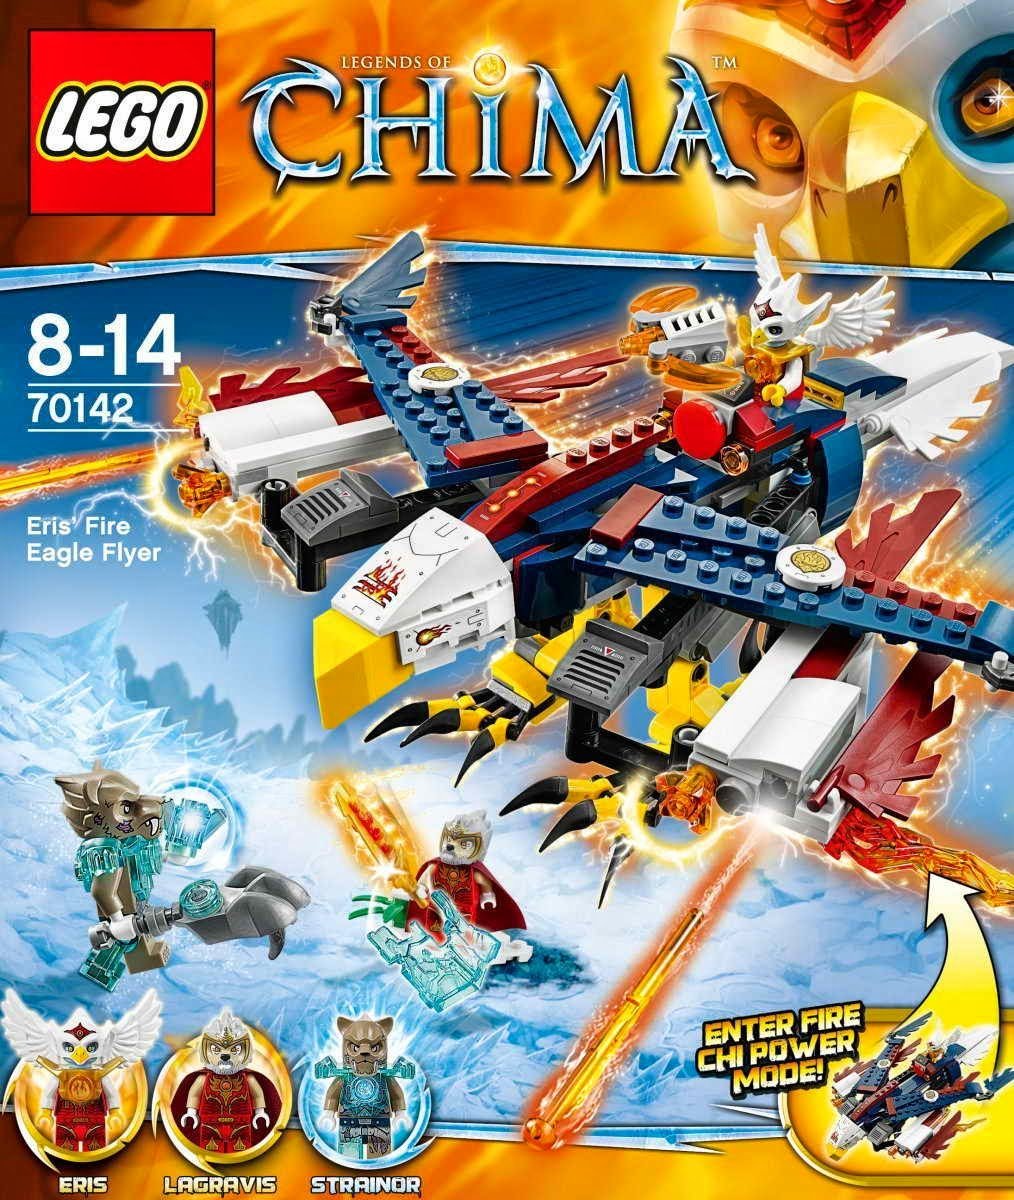 LEGO CHIMA 70142 Eris Fire Eagle Flyer